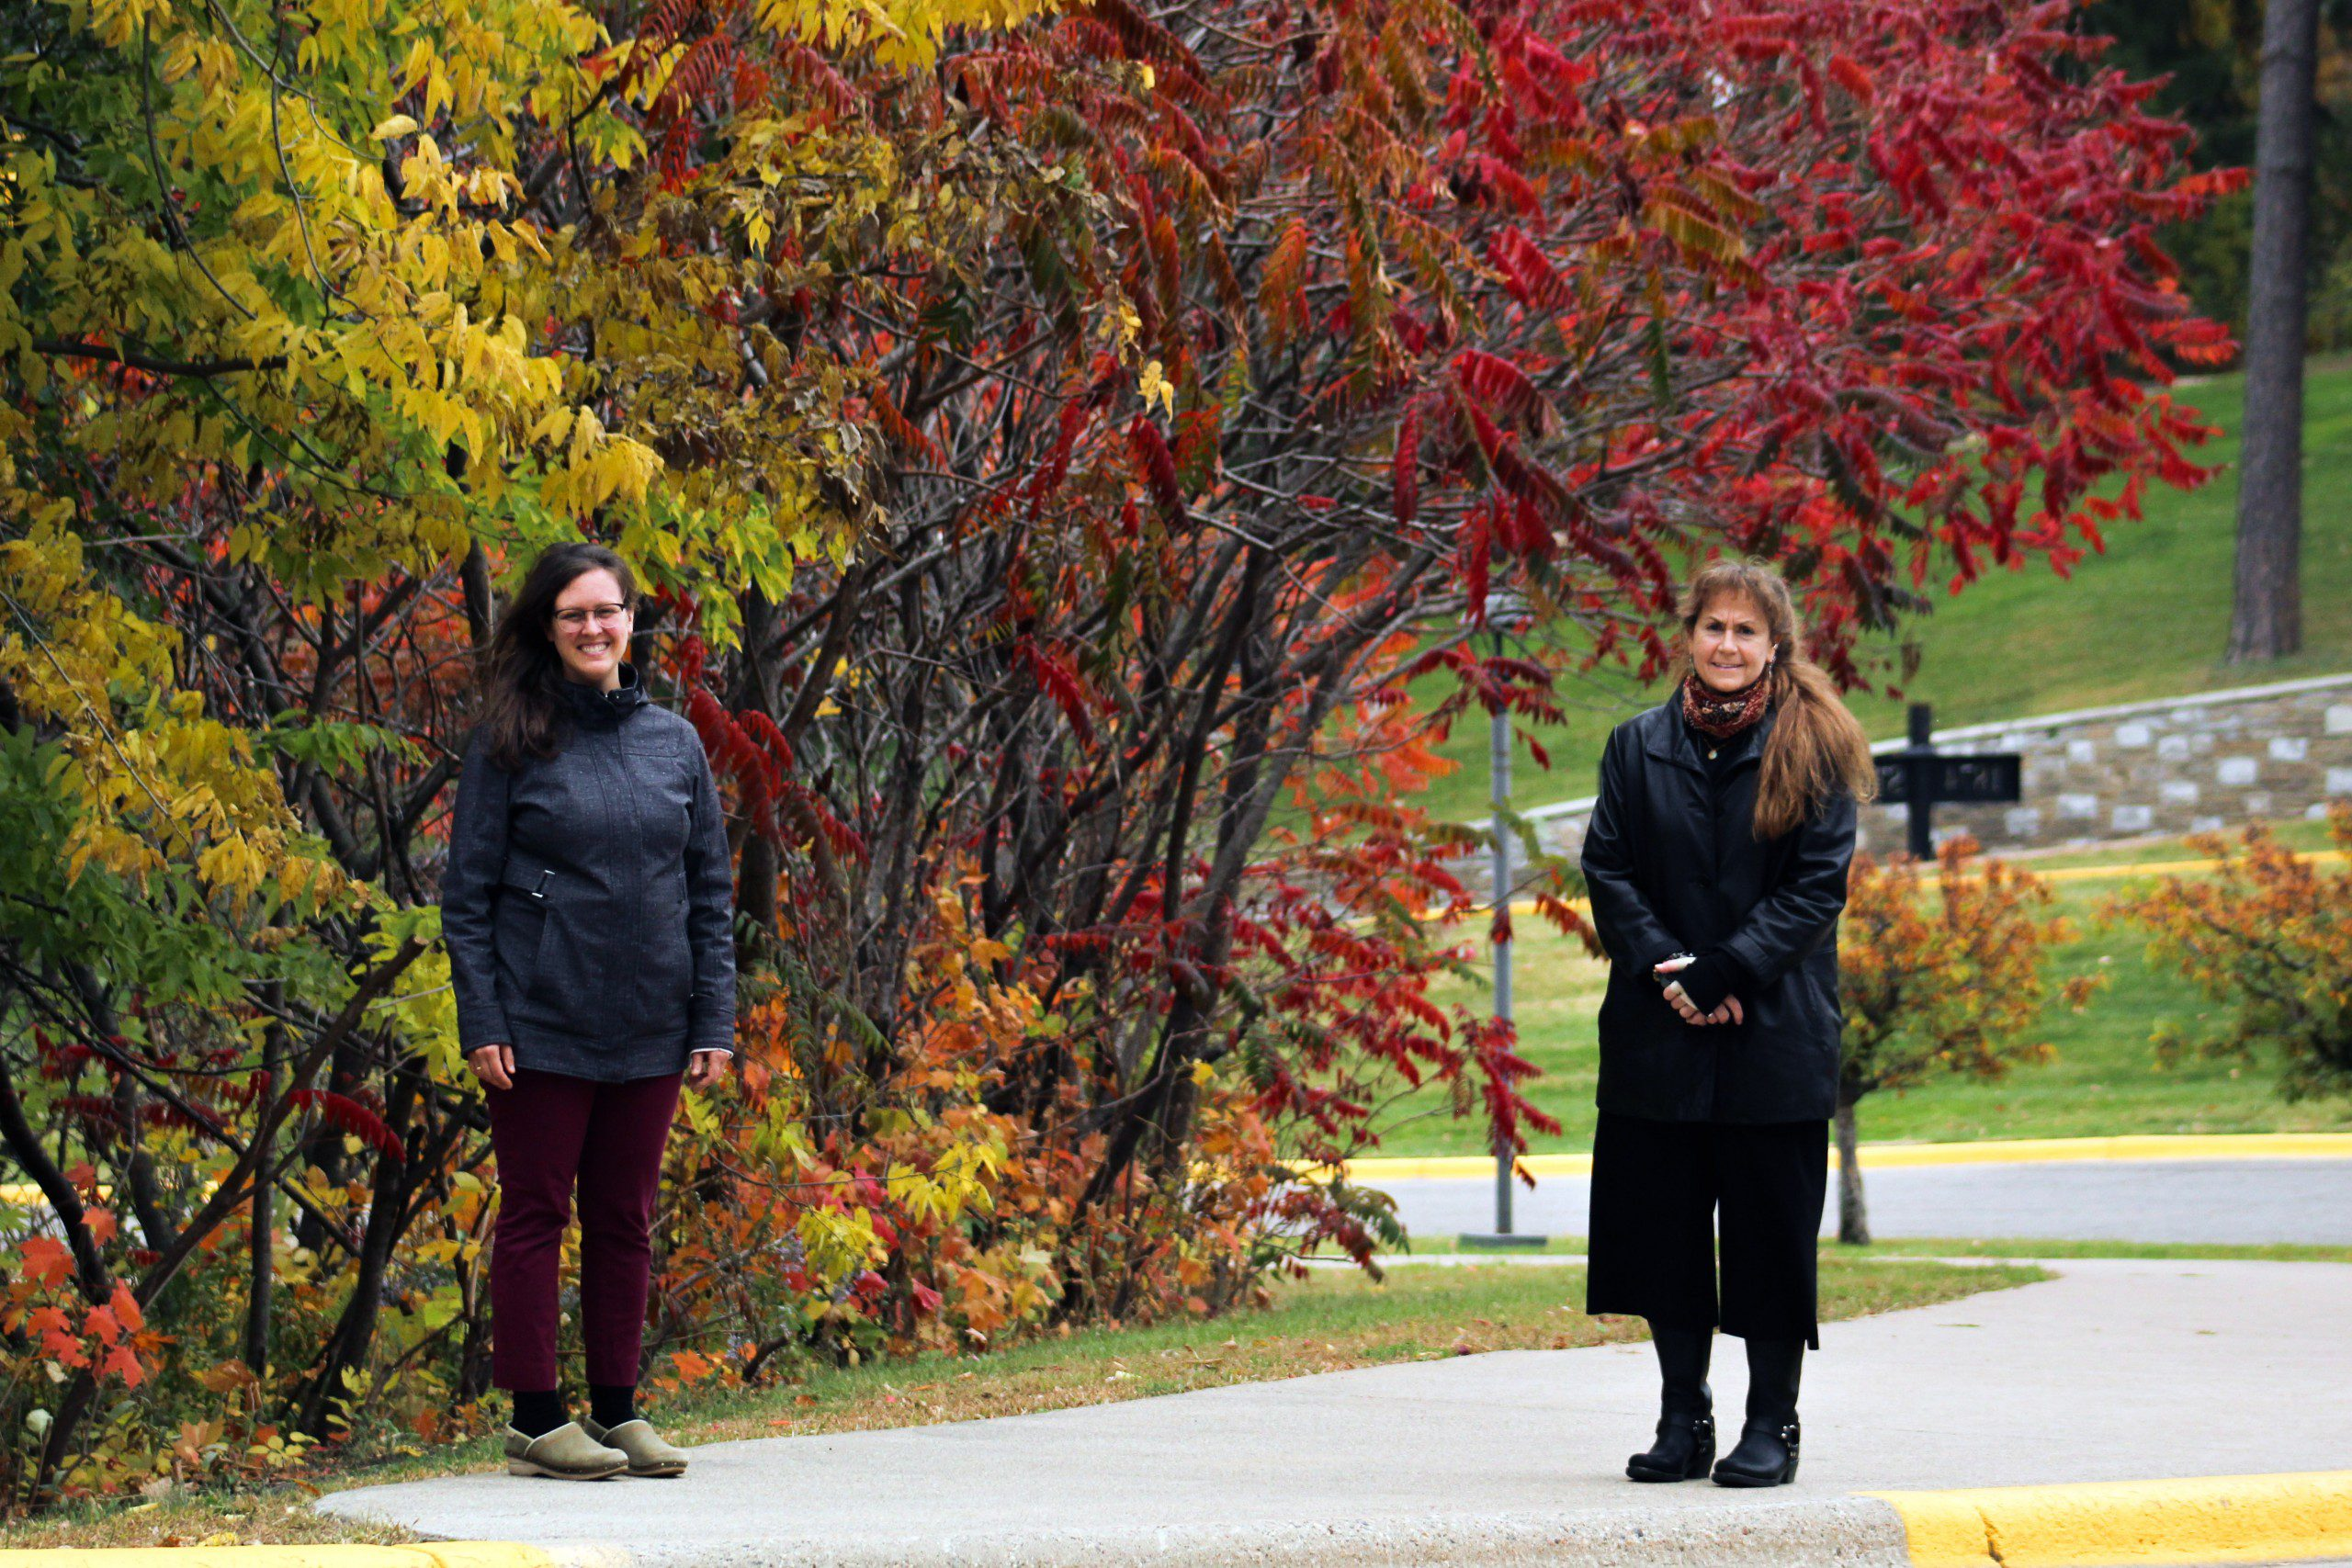 Portrait of Bridget Draxler (left) and Diane LeBlanc outside with trees in the background.